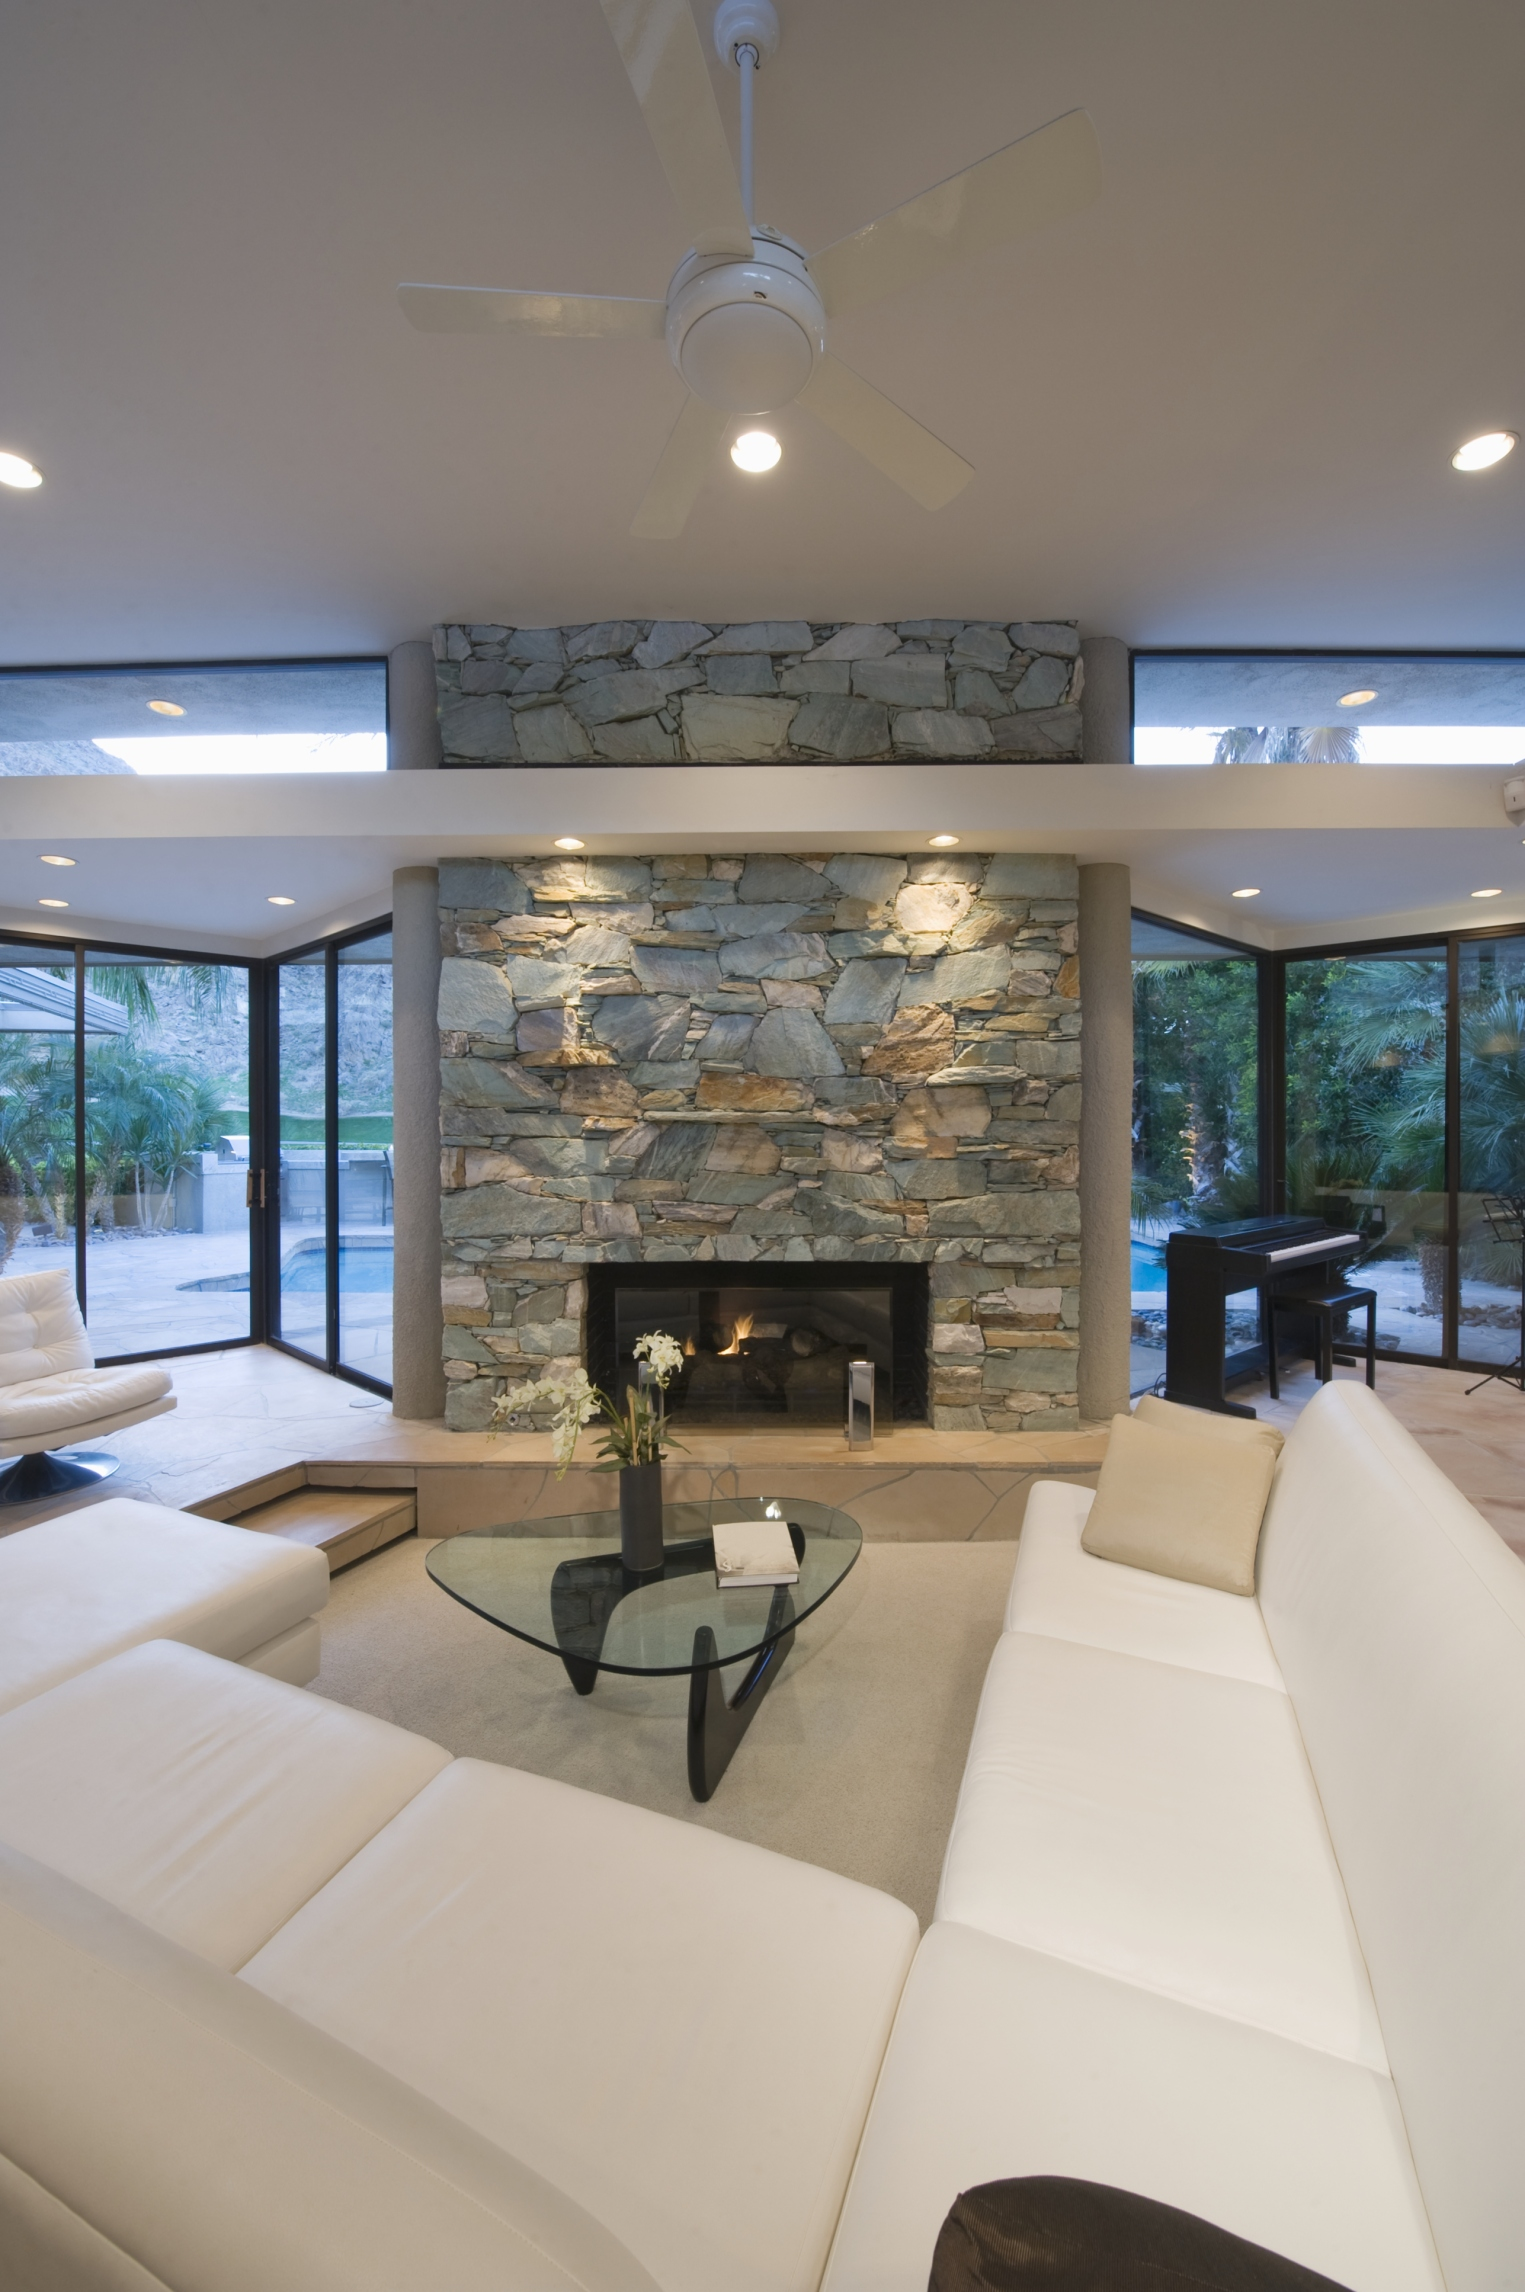 Grey rock fireplace surround in modern room